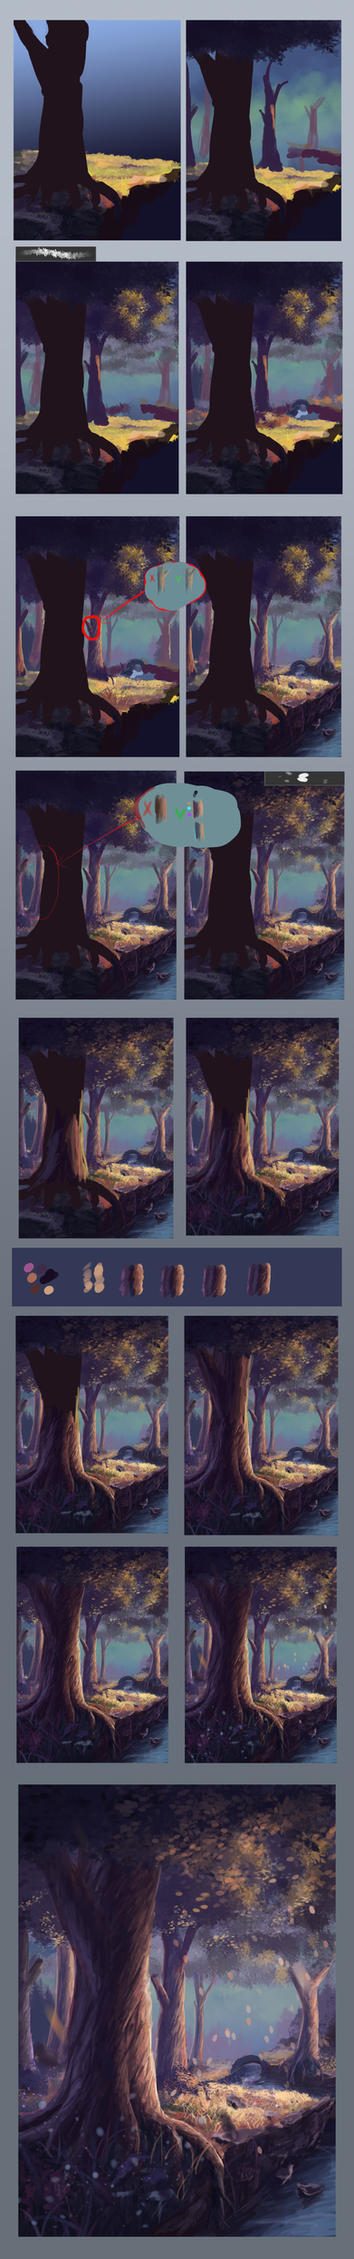 Step by step #2(fairy tree) by Sylar113